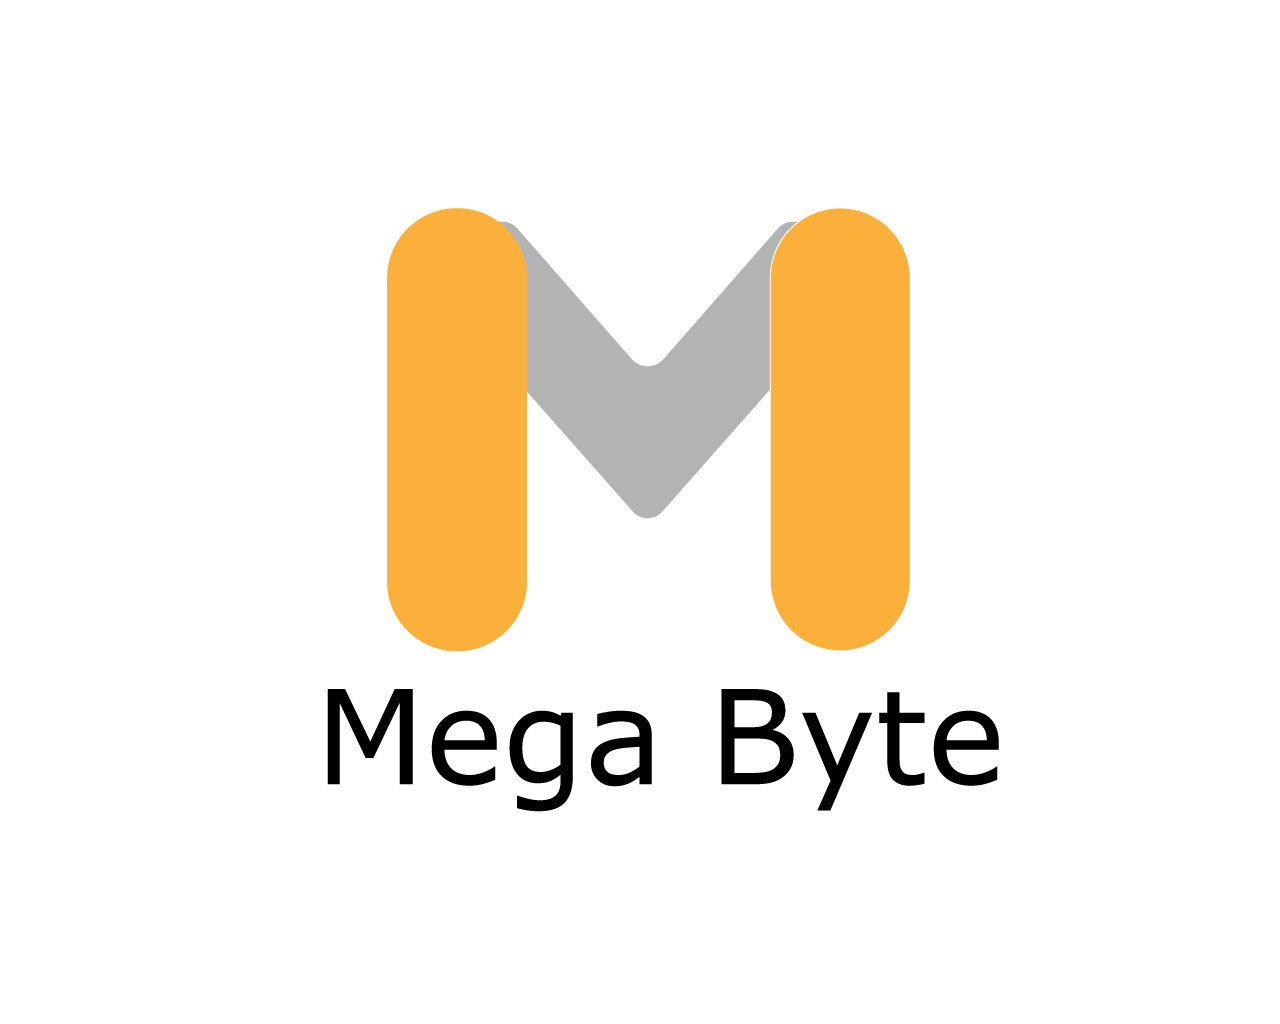 MegaByte - Digital Marketing Agency